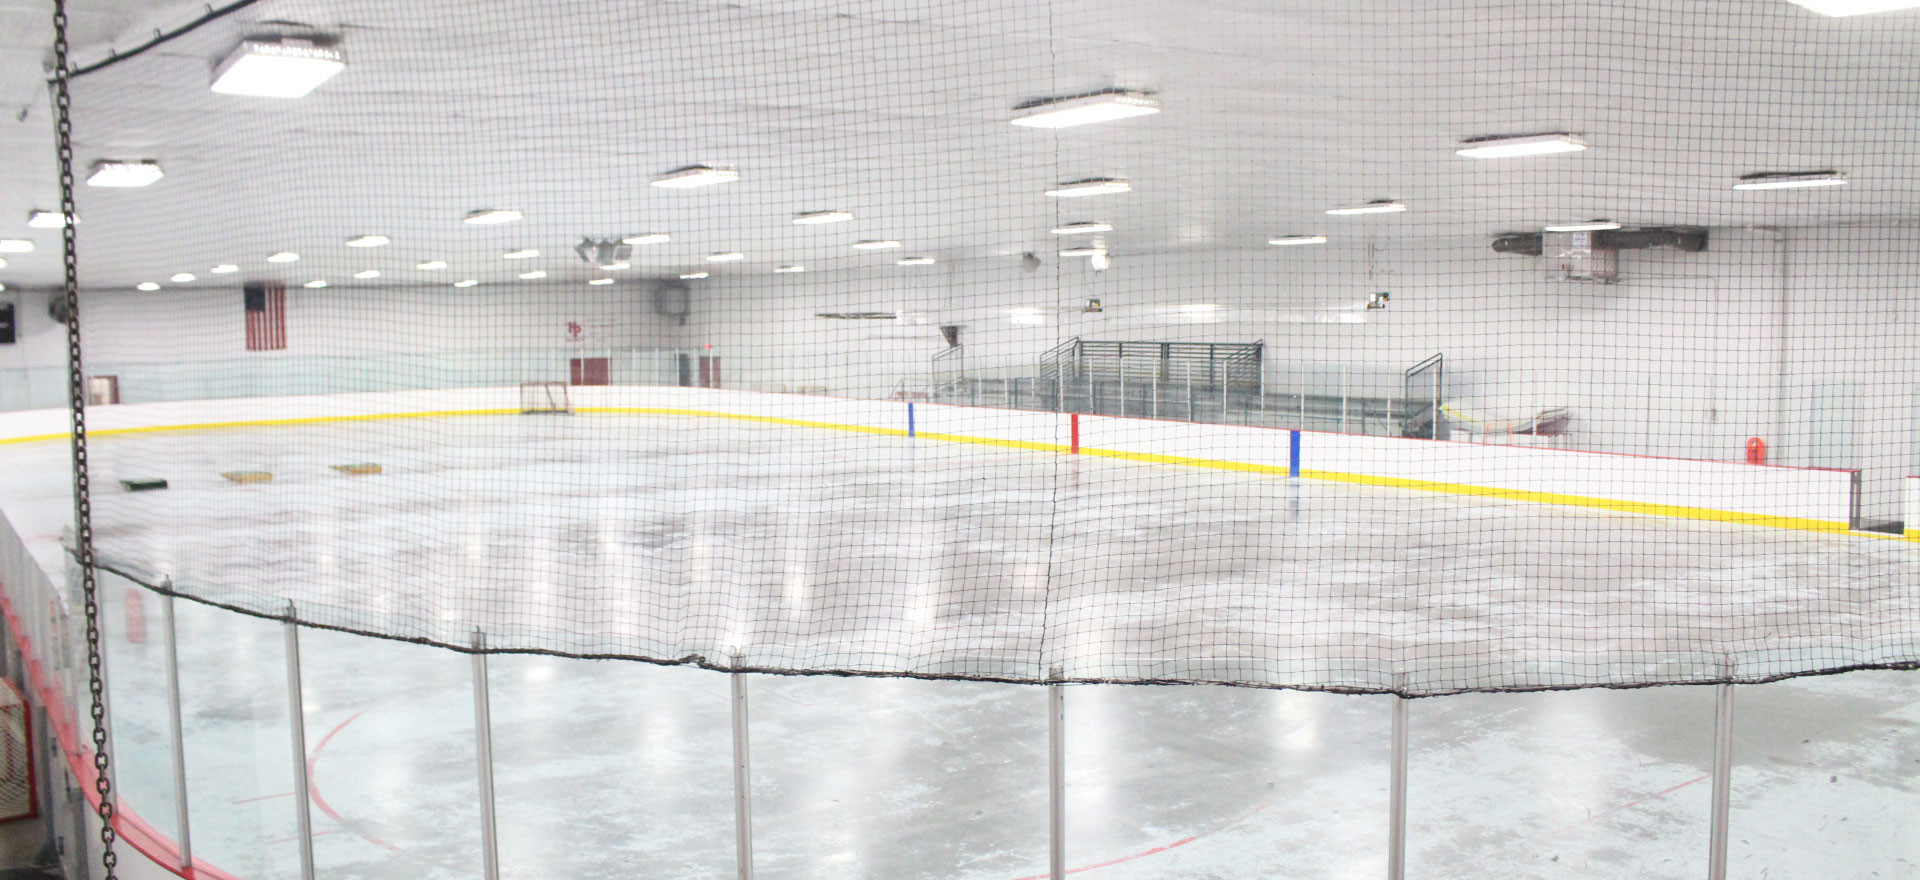 Entire South Rink